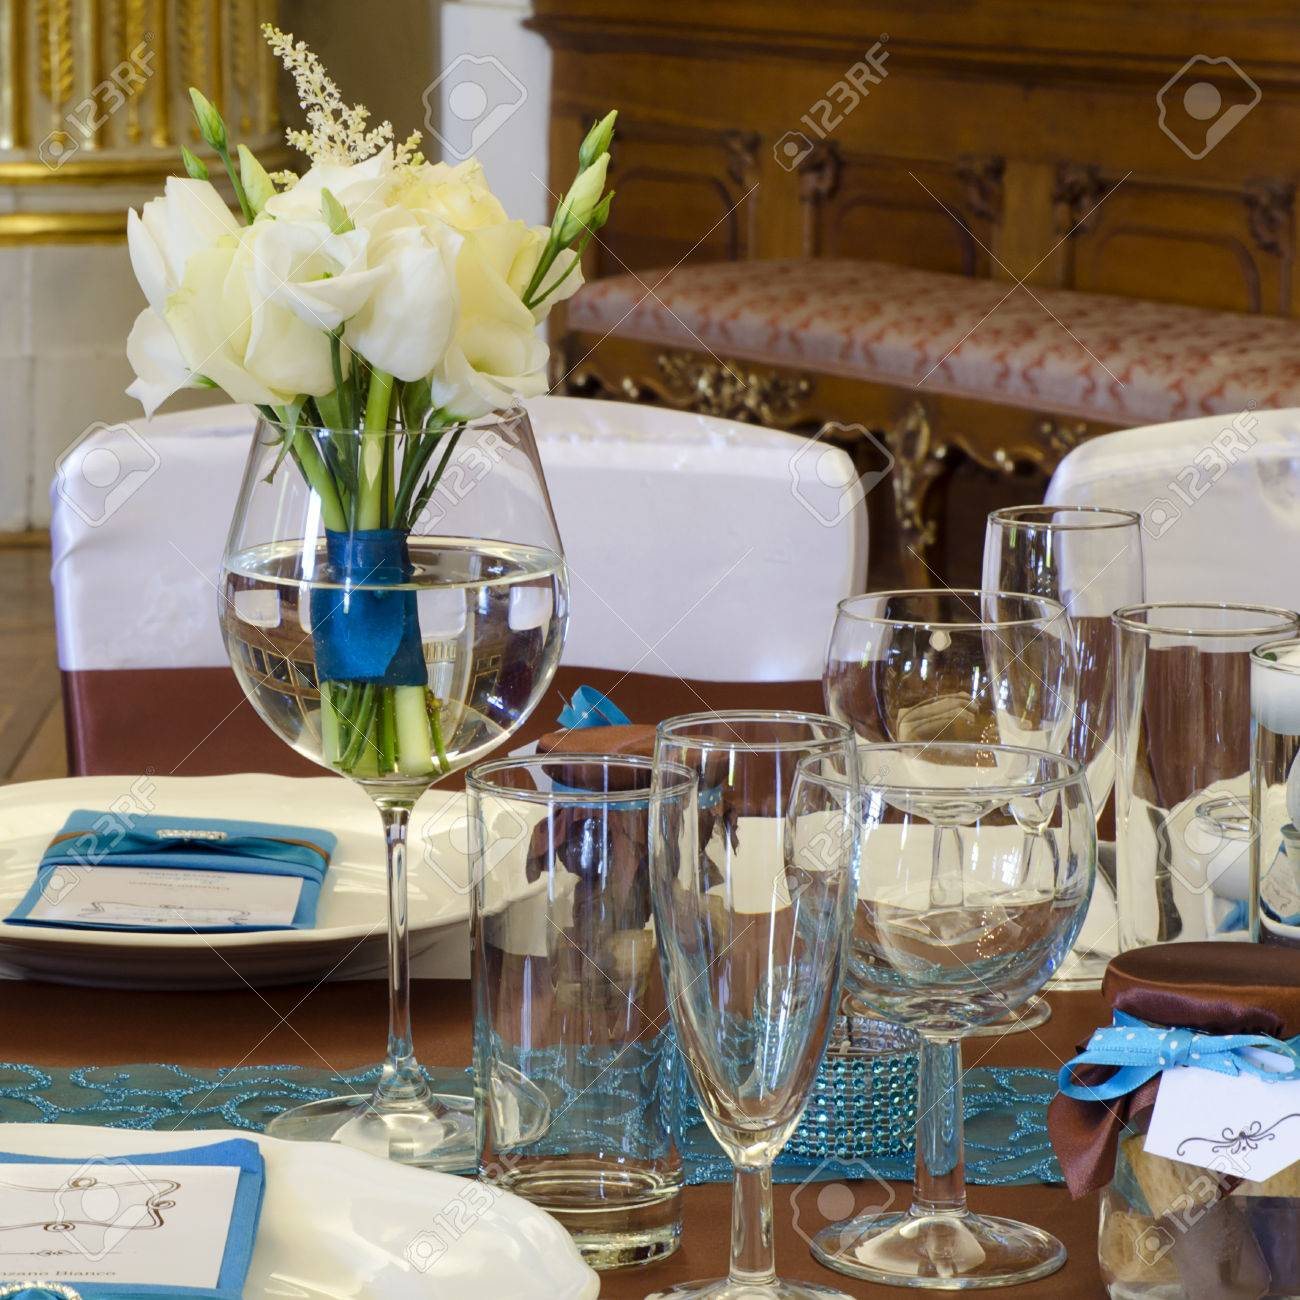 Wedding Table Setting Arrangement In A Luxury Restaurant With ...